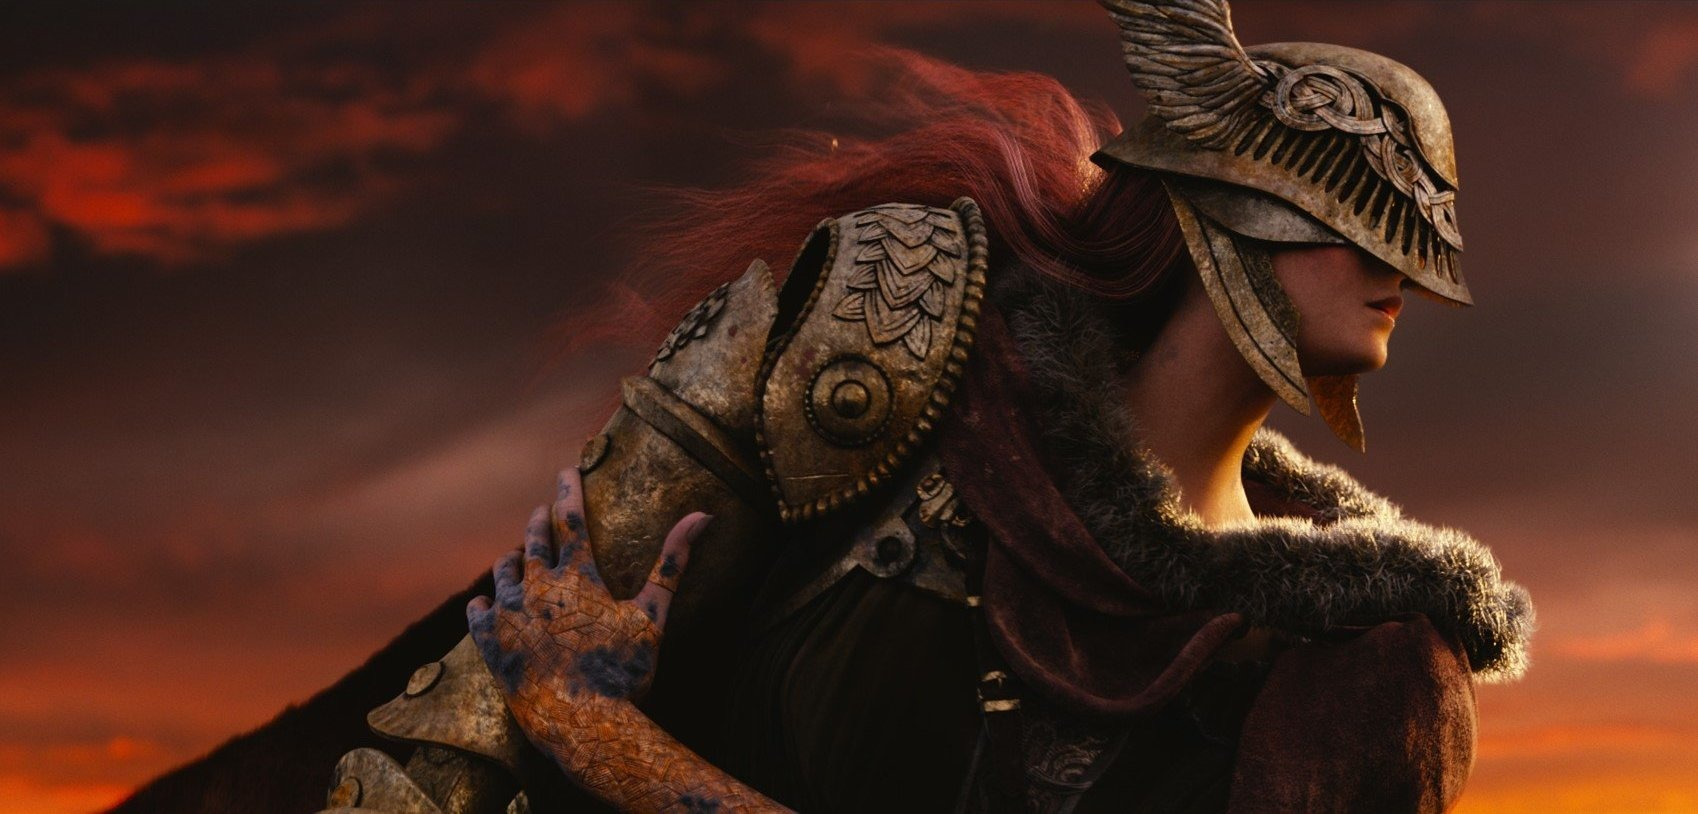 Elden Ring Age Rating Could Be a Hint at a Possible New Trailer